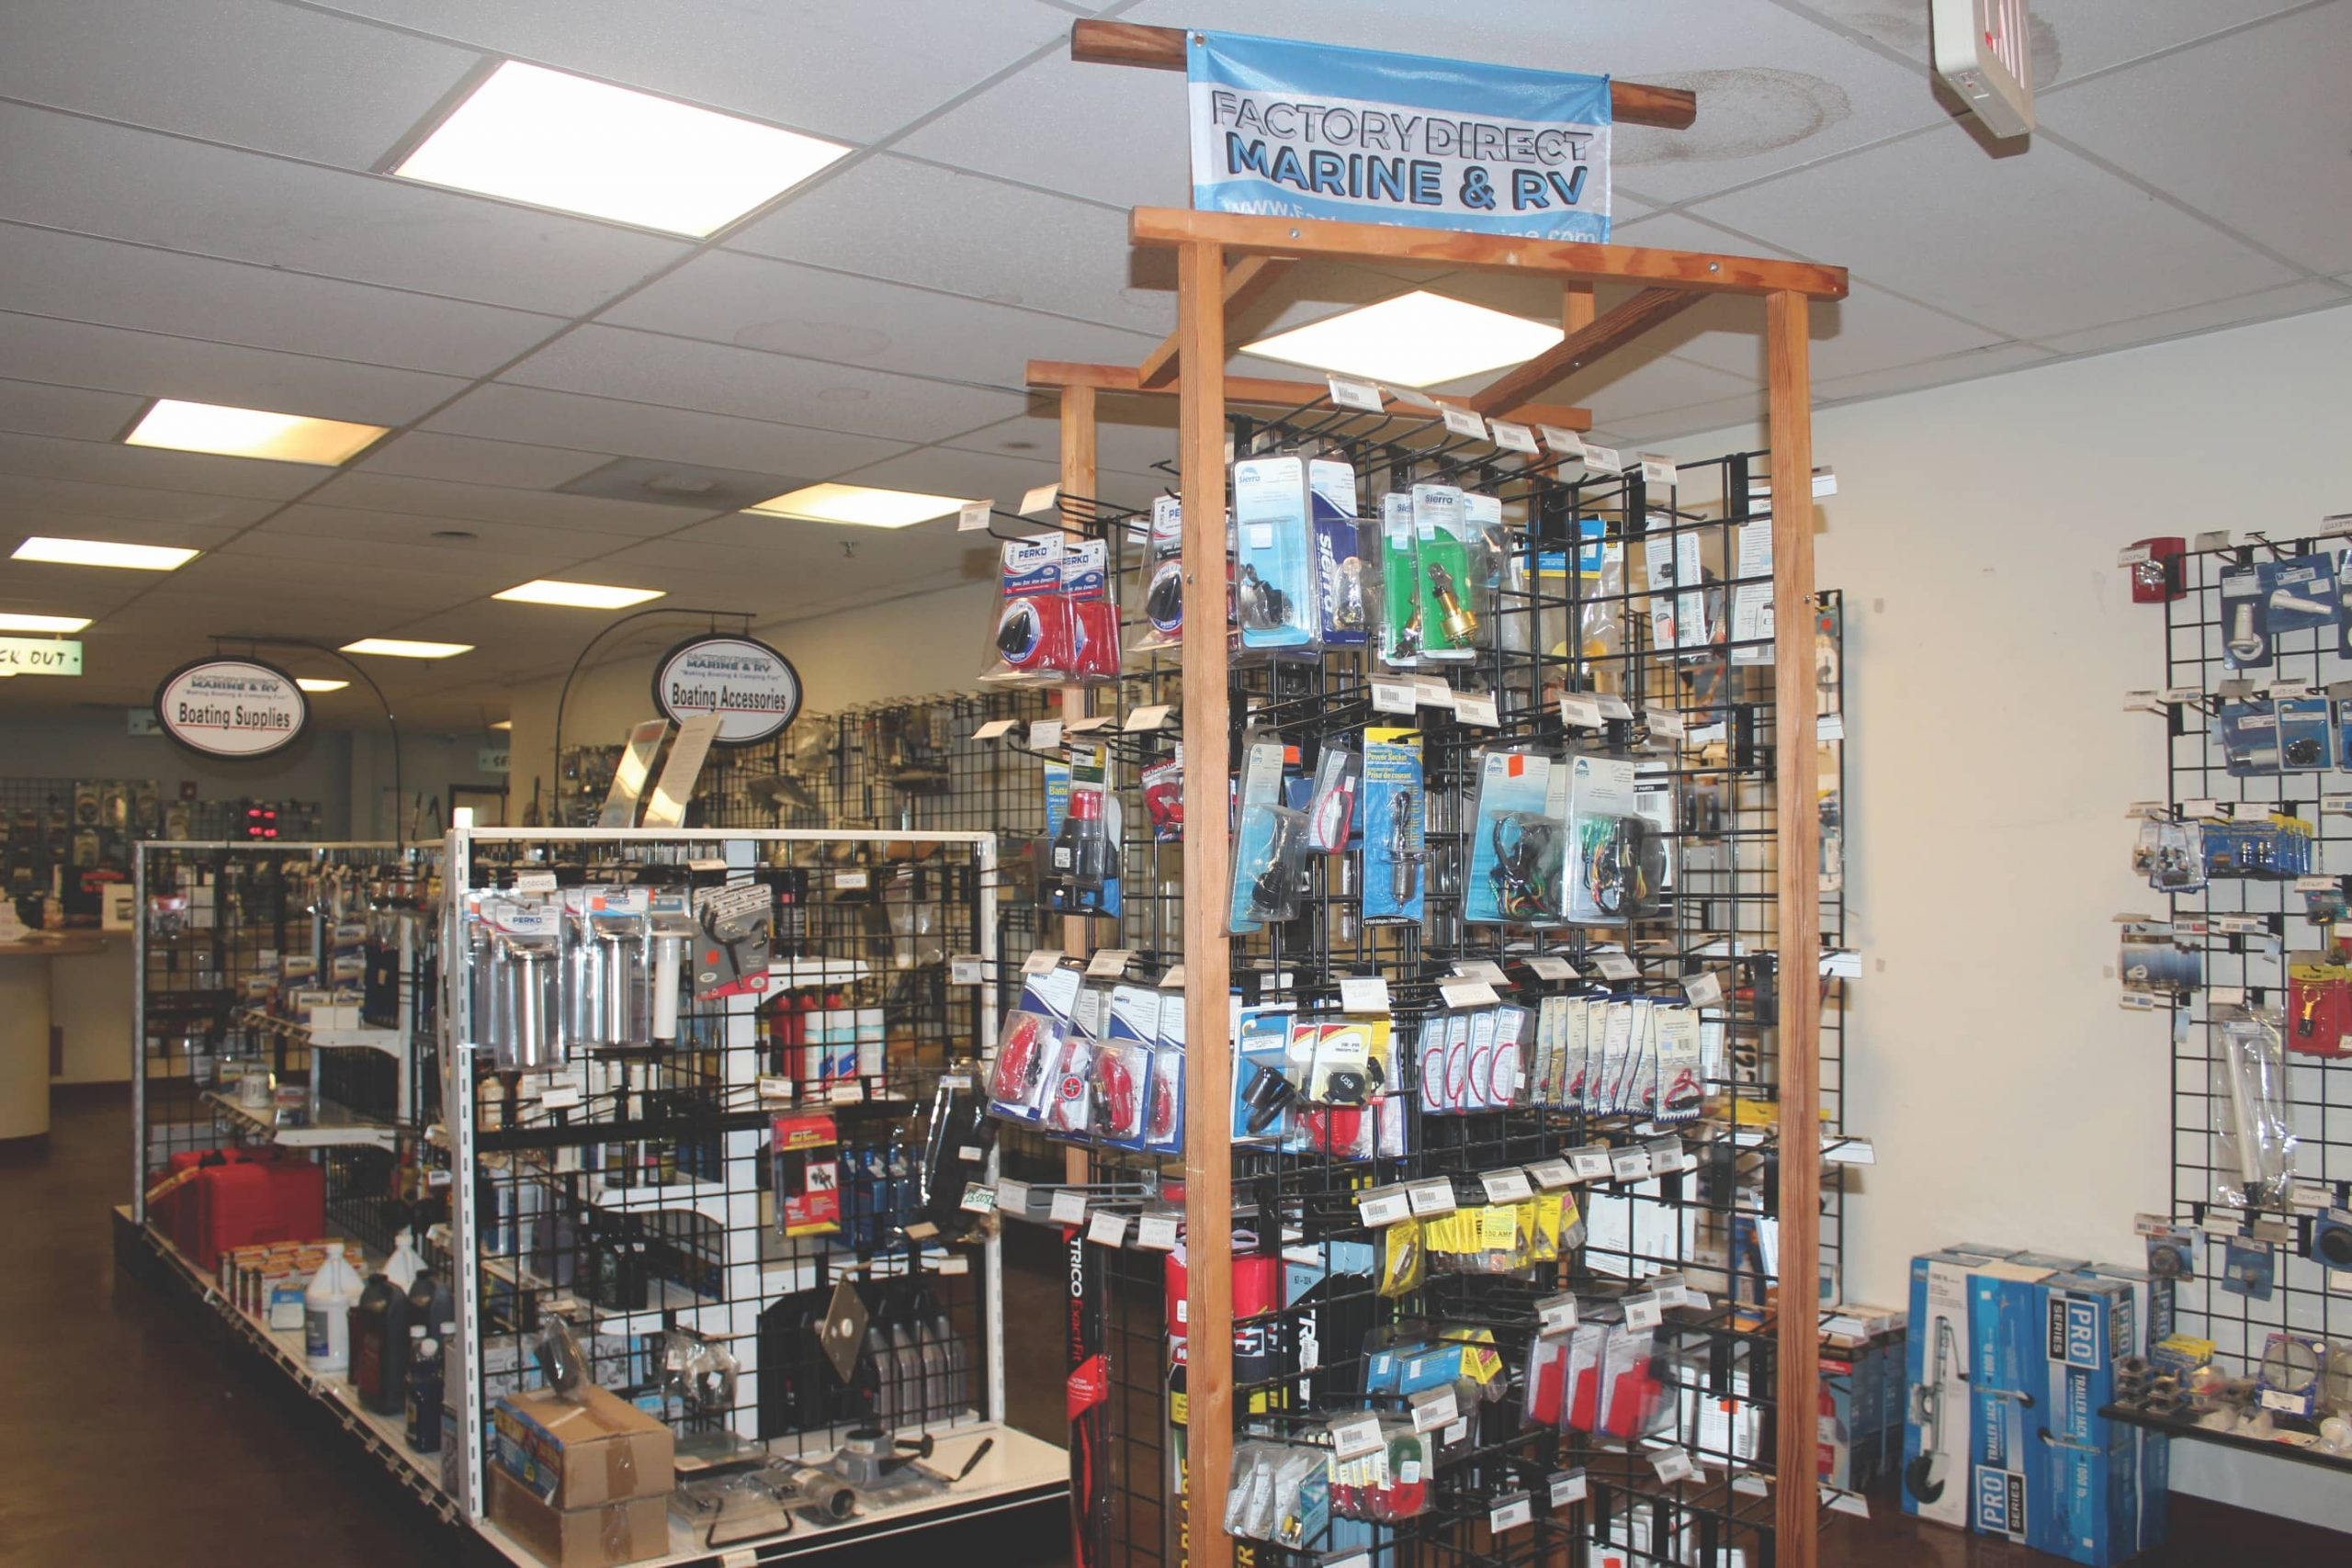 Factory Direct Marine & RV stores